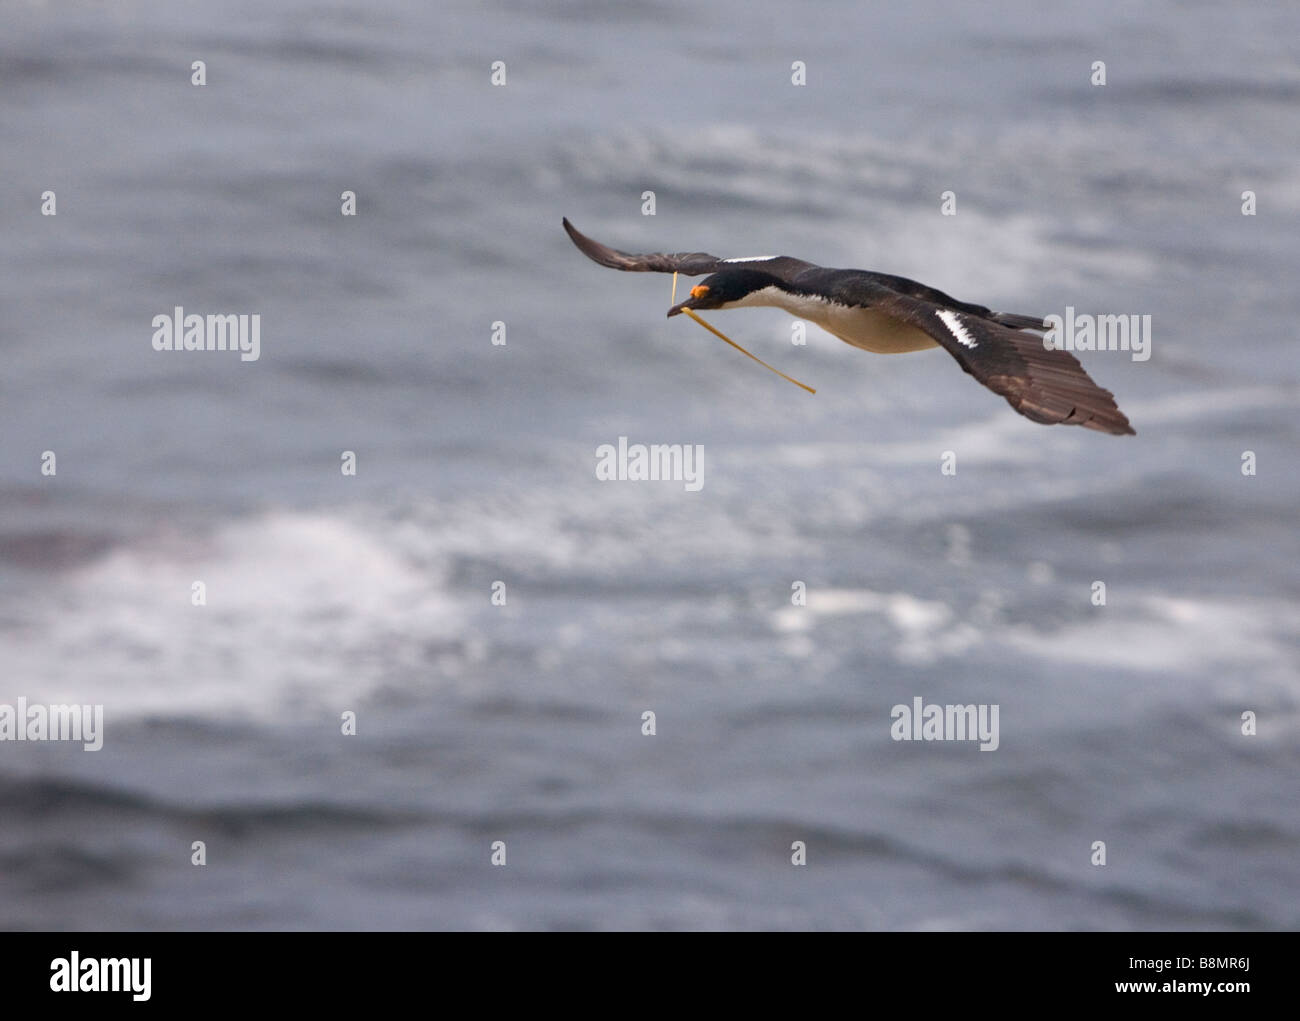 King/Imperial Shag (Phalacrocorax atriceps albiventer) flying over The Falkland Islands. - Stock Image